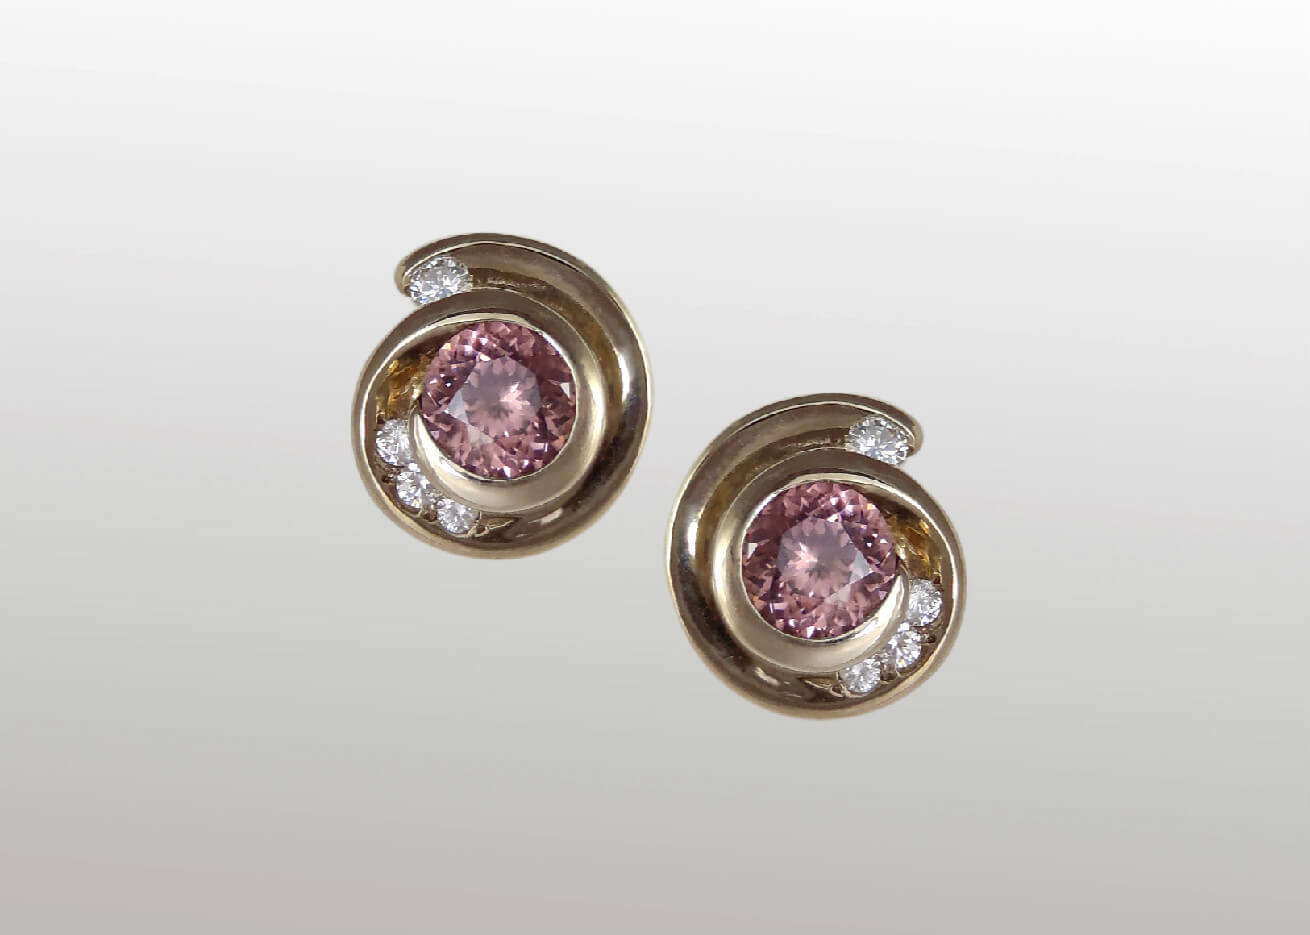 Cinnamon Zircon and Diamond Swirl Earrings in White Gold